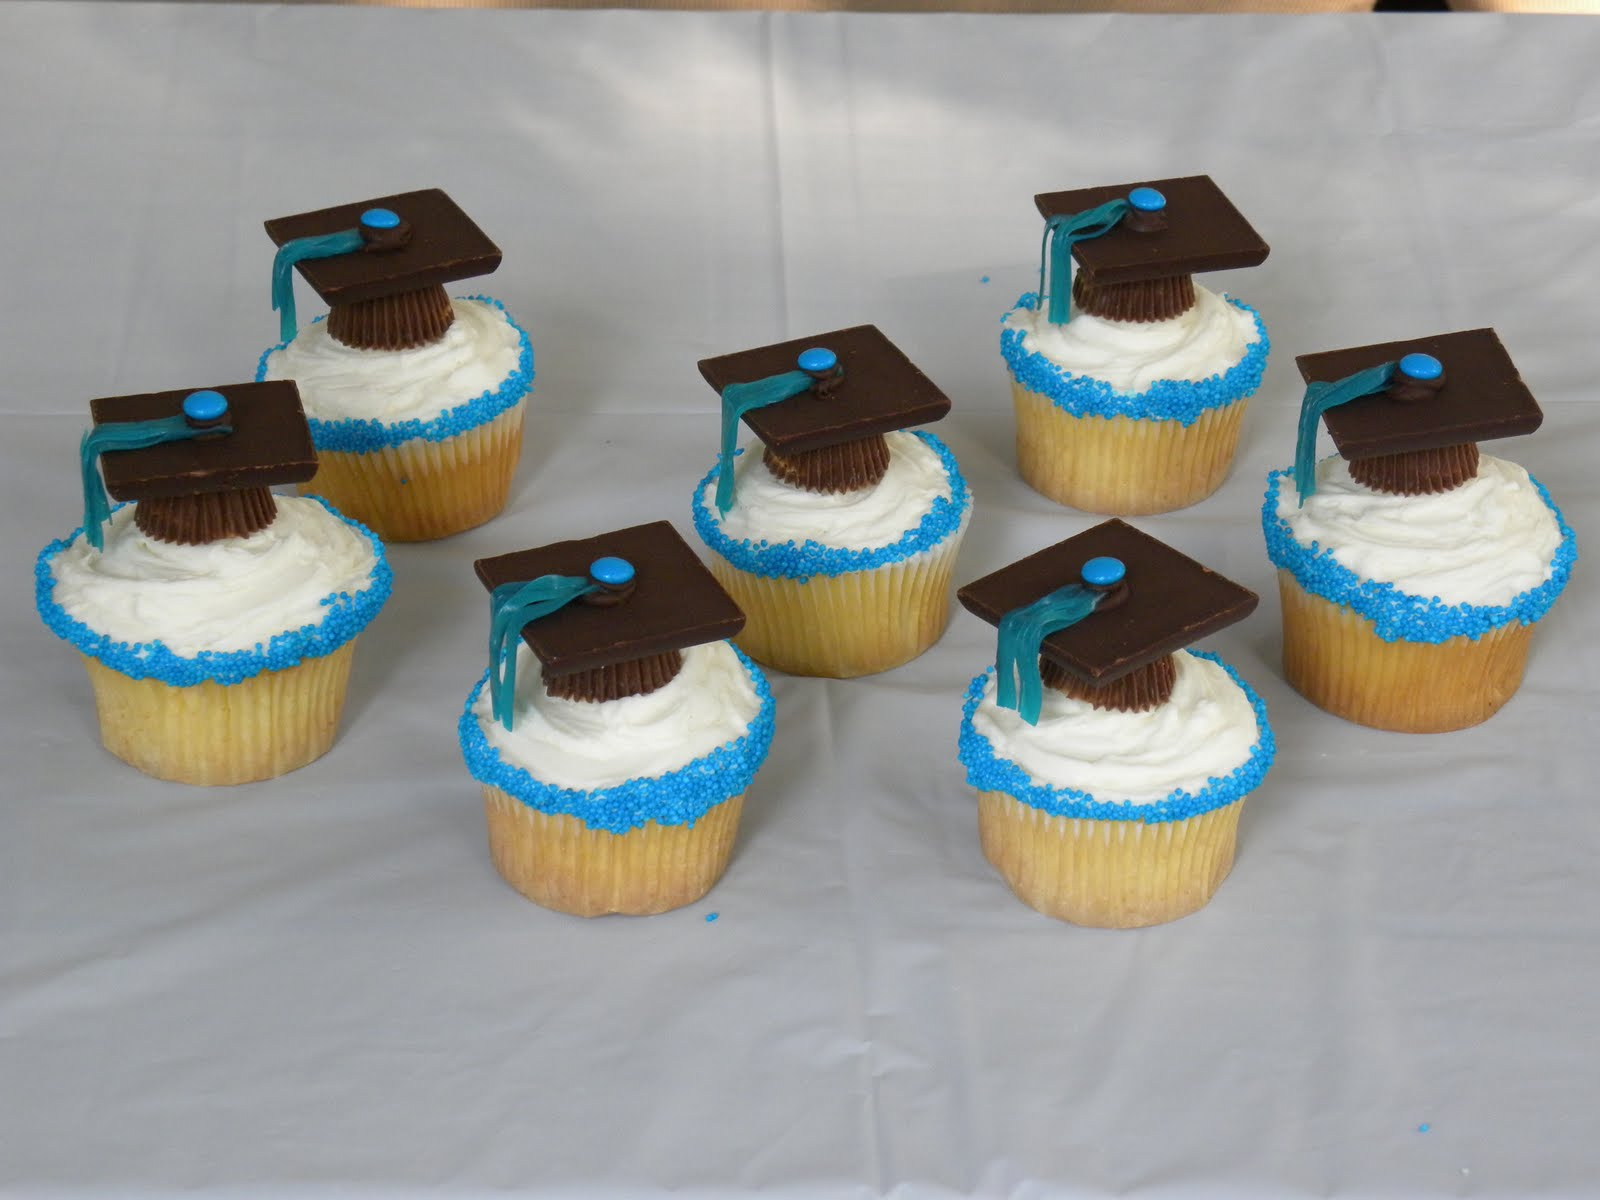 Cupcake Decorating Ideas Graduation Party : Graduation Cupcakes Graduation Cupcake Decorating Ideas ...